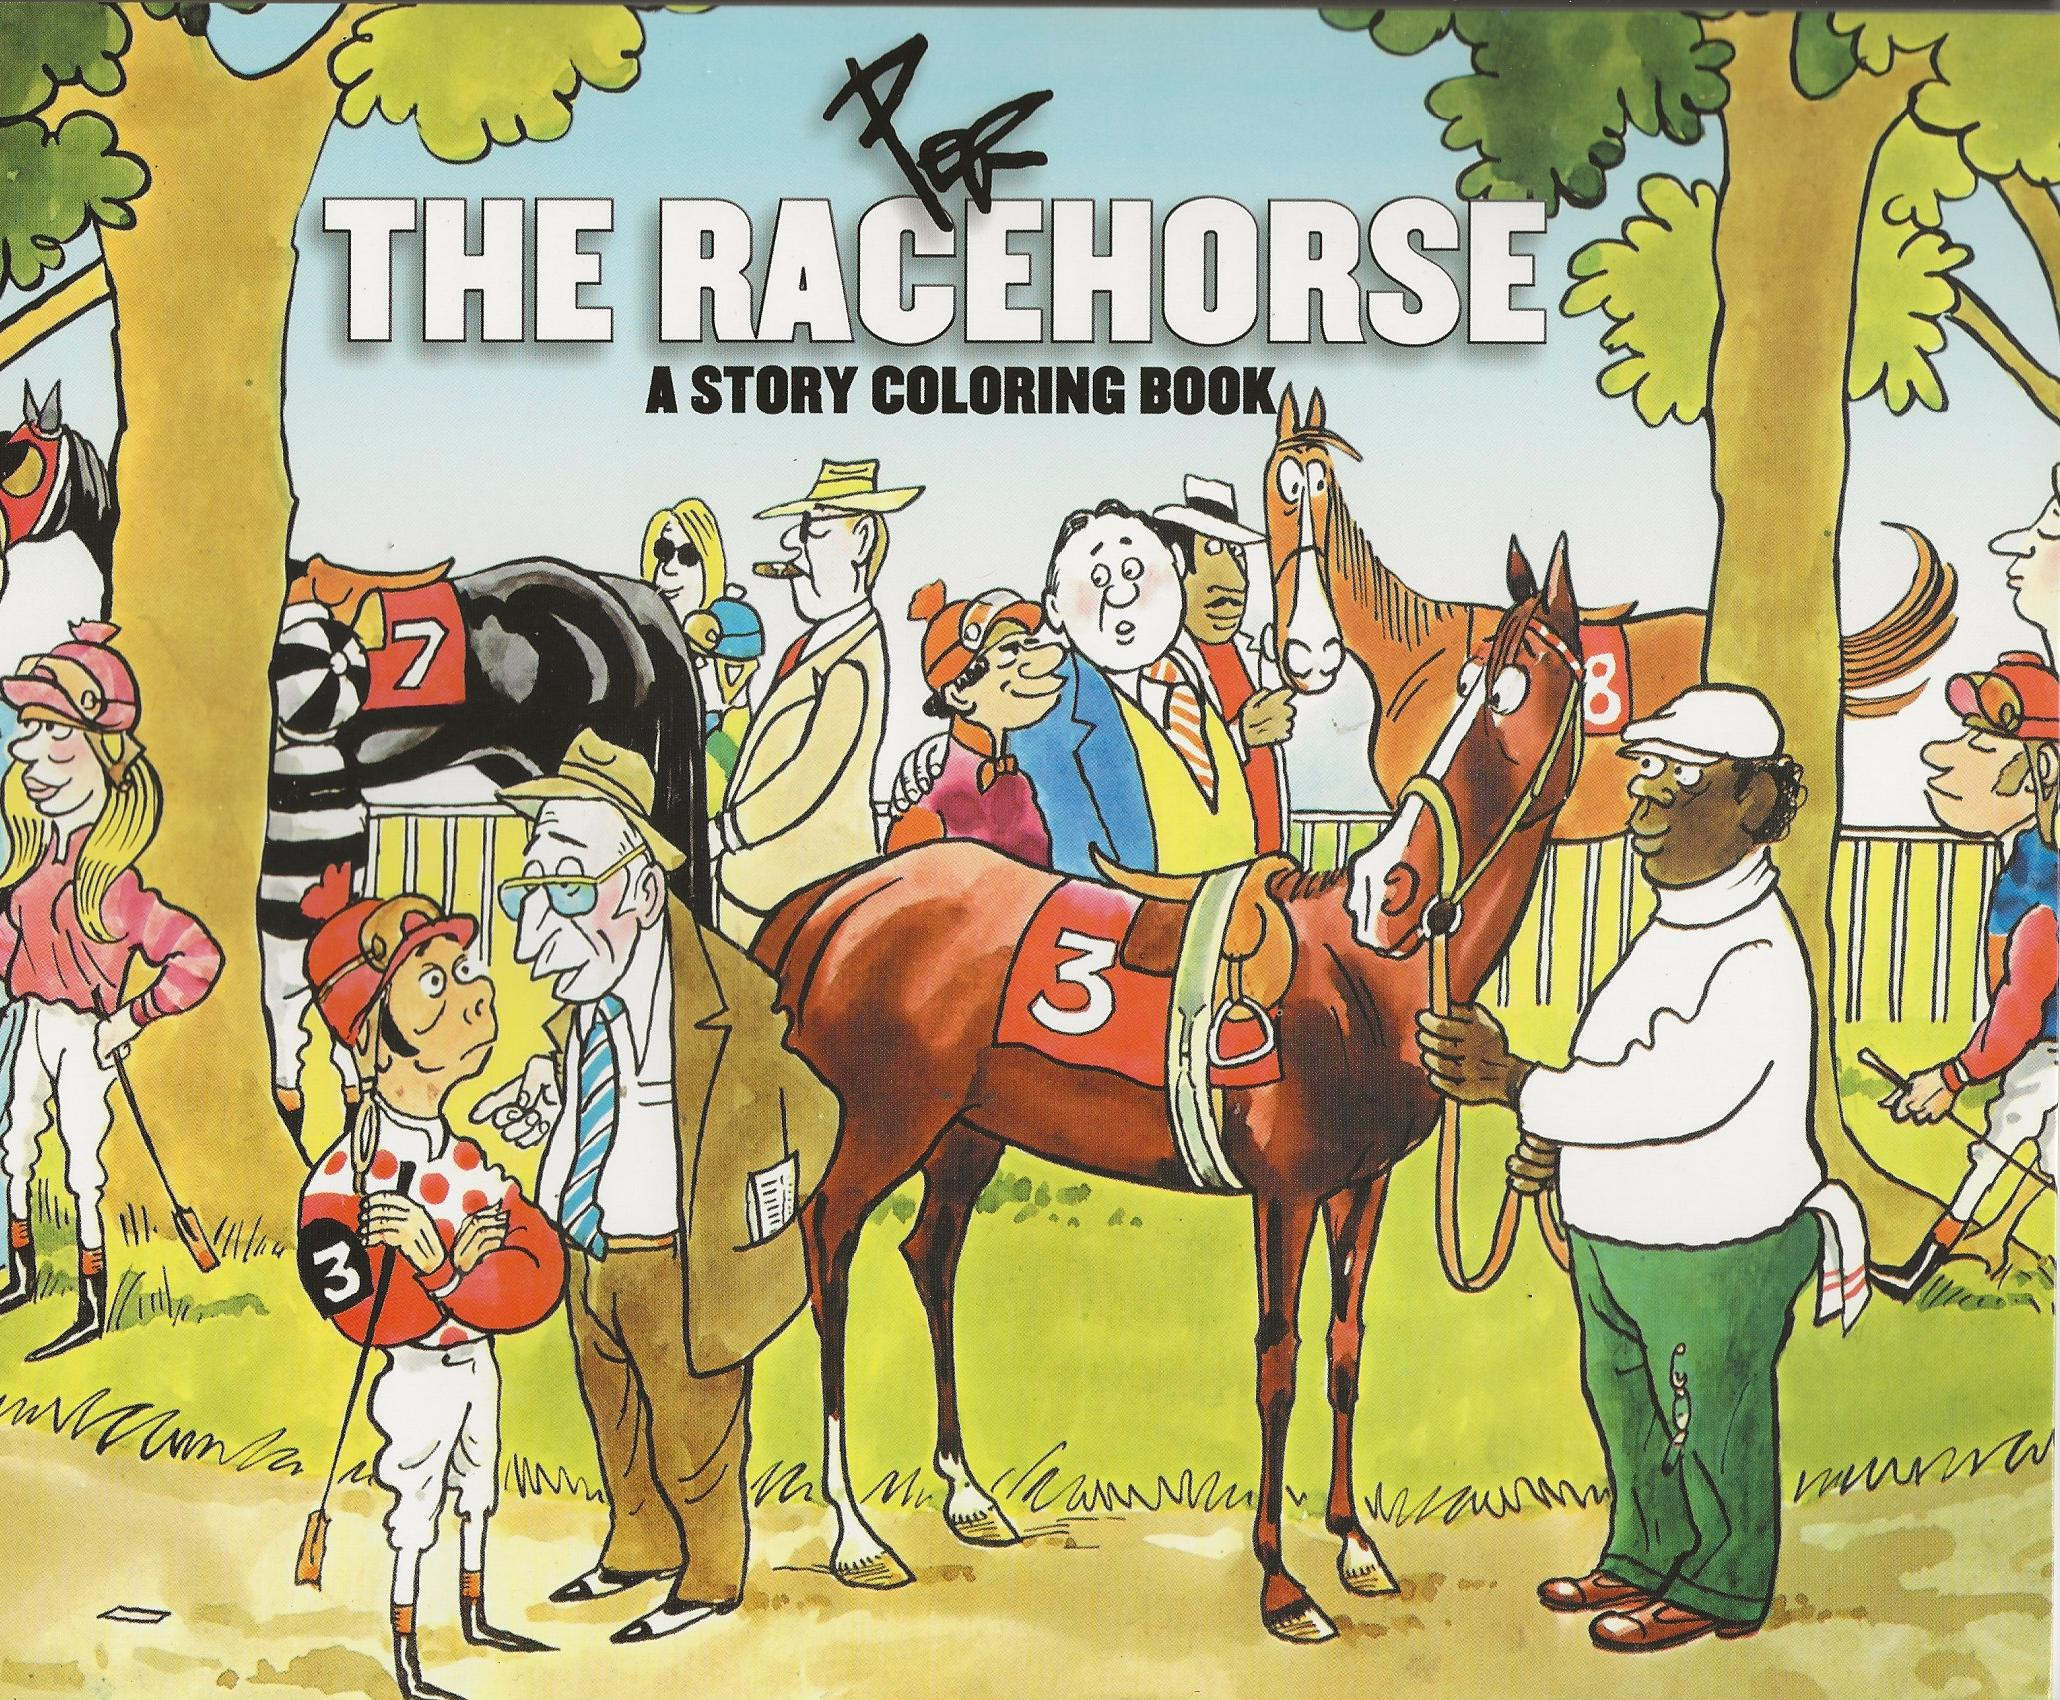 THE RACEHORSE ~ A Story Coloring Book